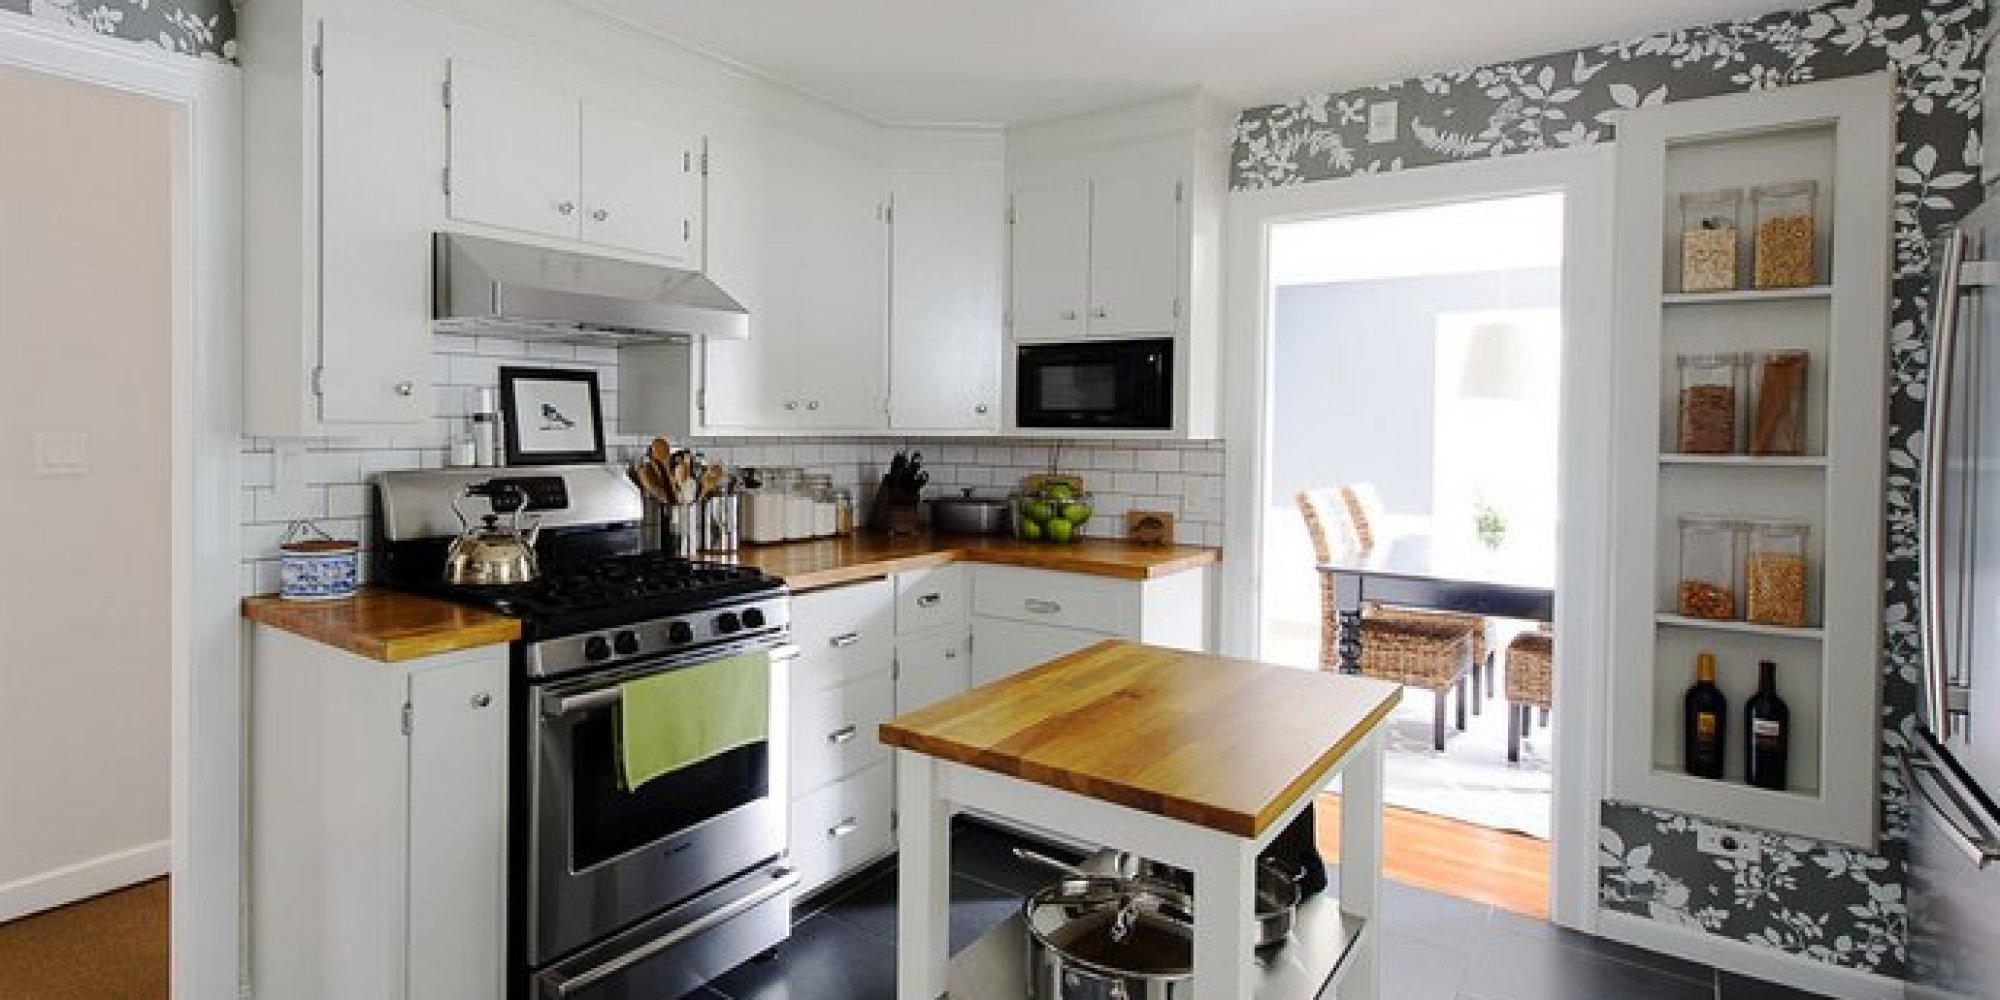 19 inexpensive ways to fix up your kitchen photos huffpost On cheapest way to remodel kitchen